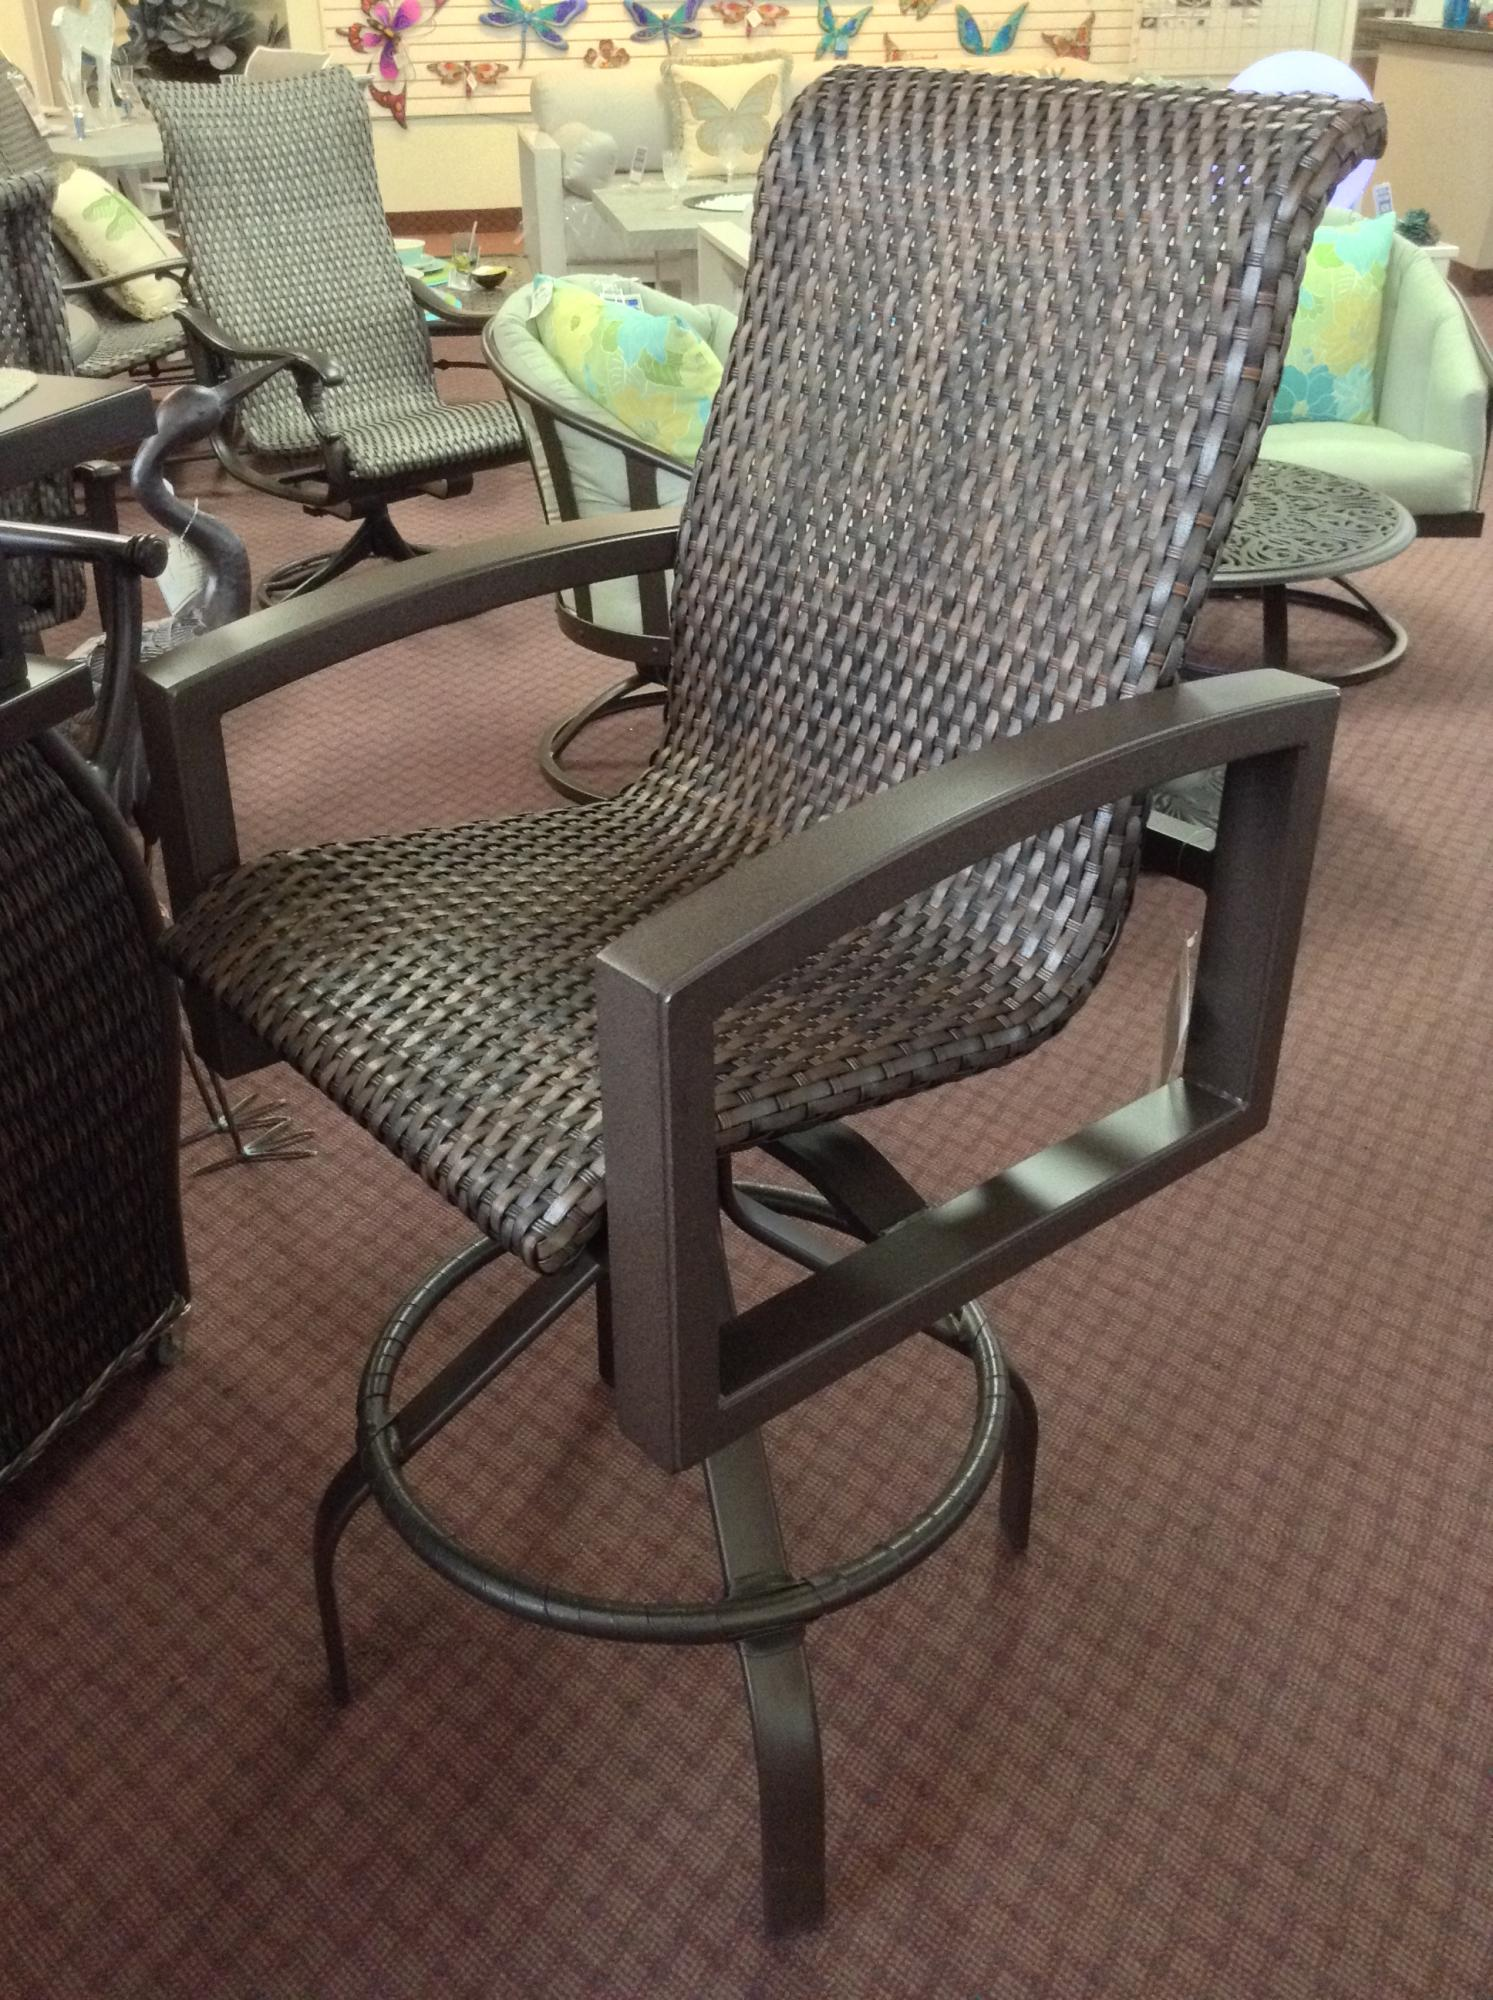 "Lakeside Woven Swivel Bar Stool W=25.5"" D=28.5"" H=48"" SH=30"" AH=36"""